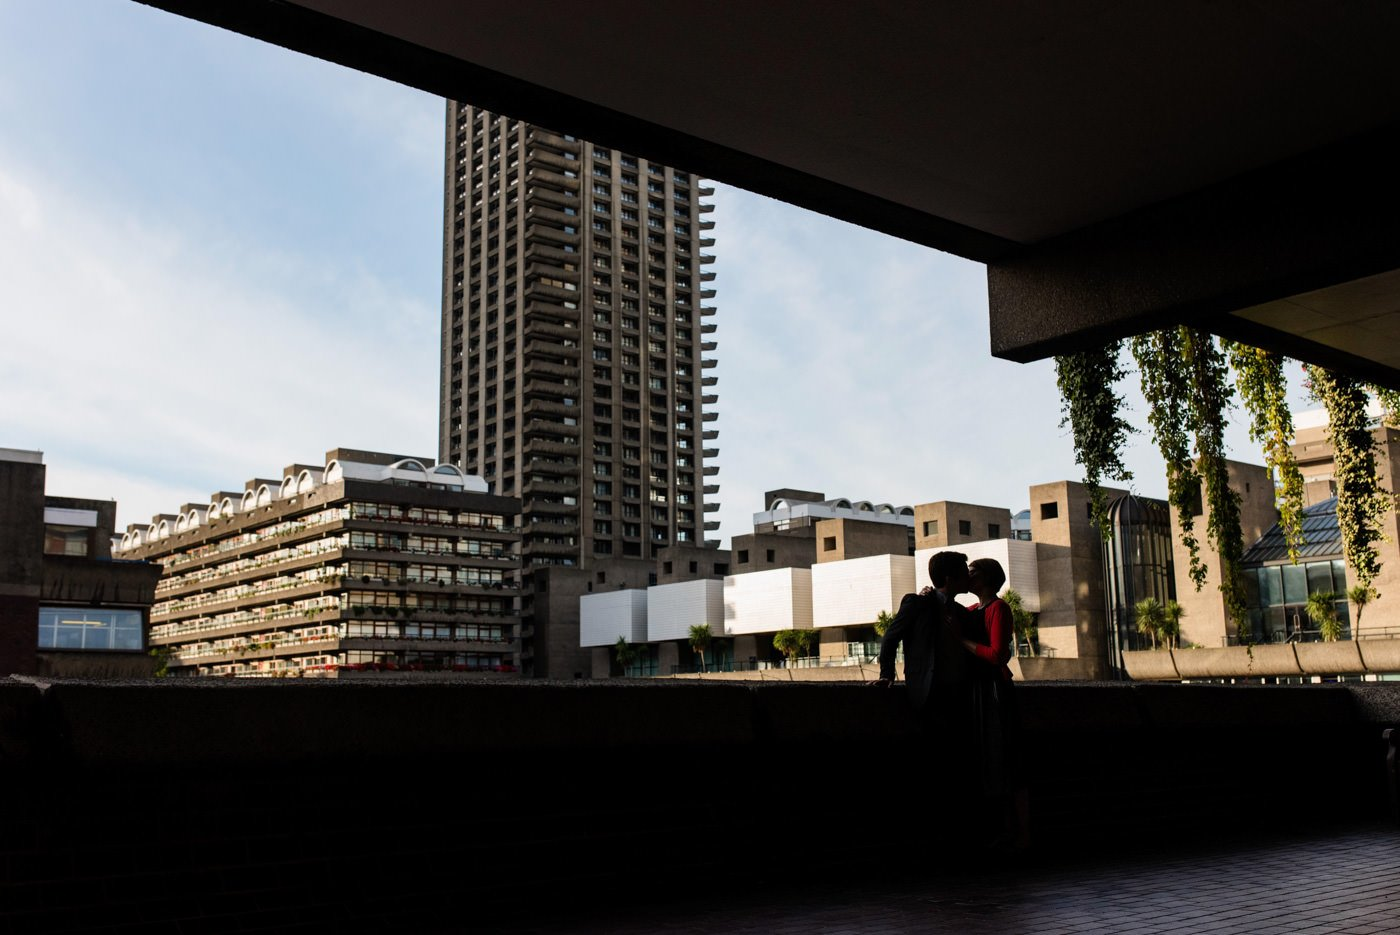 Couple in shadow against backdrop of Barbican centre in London